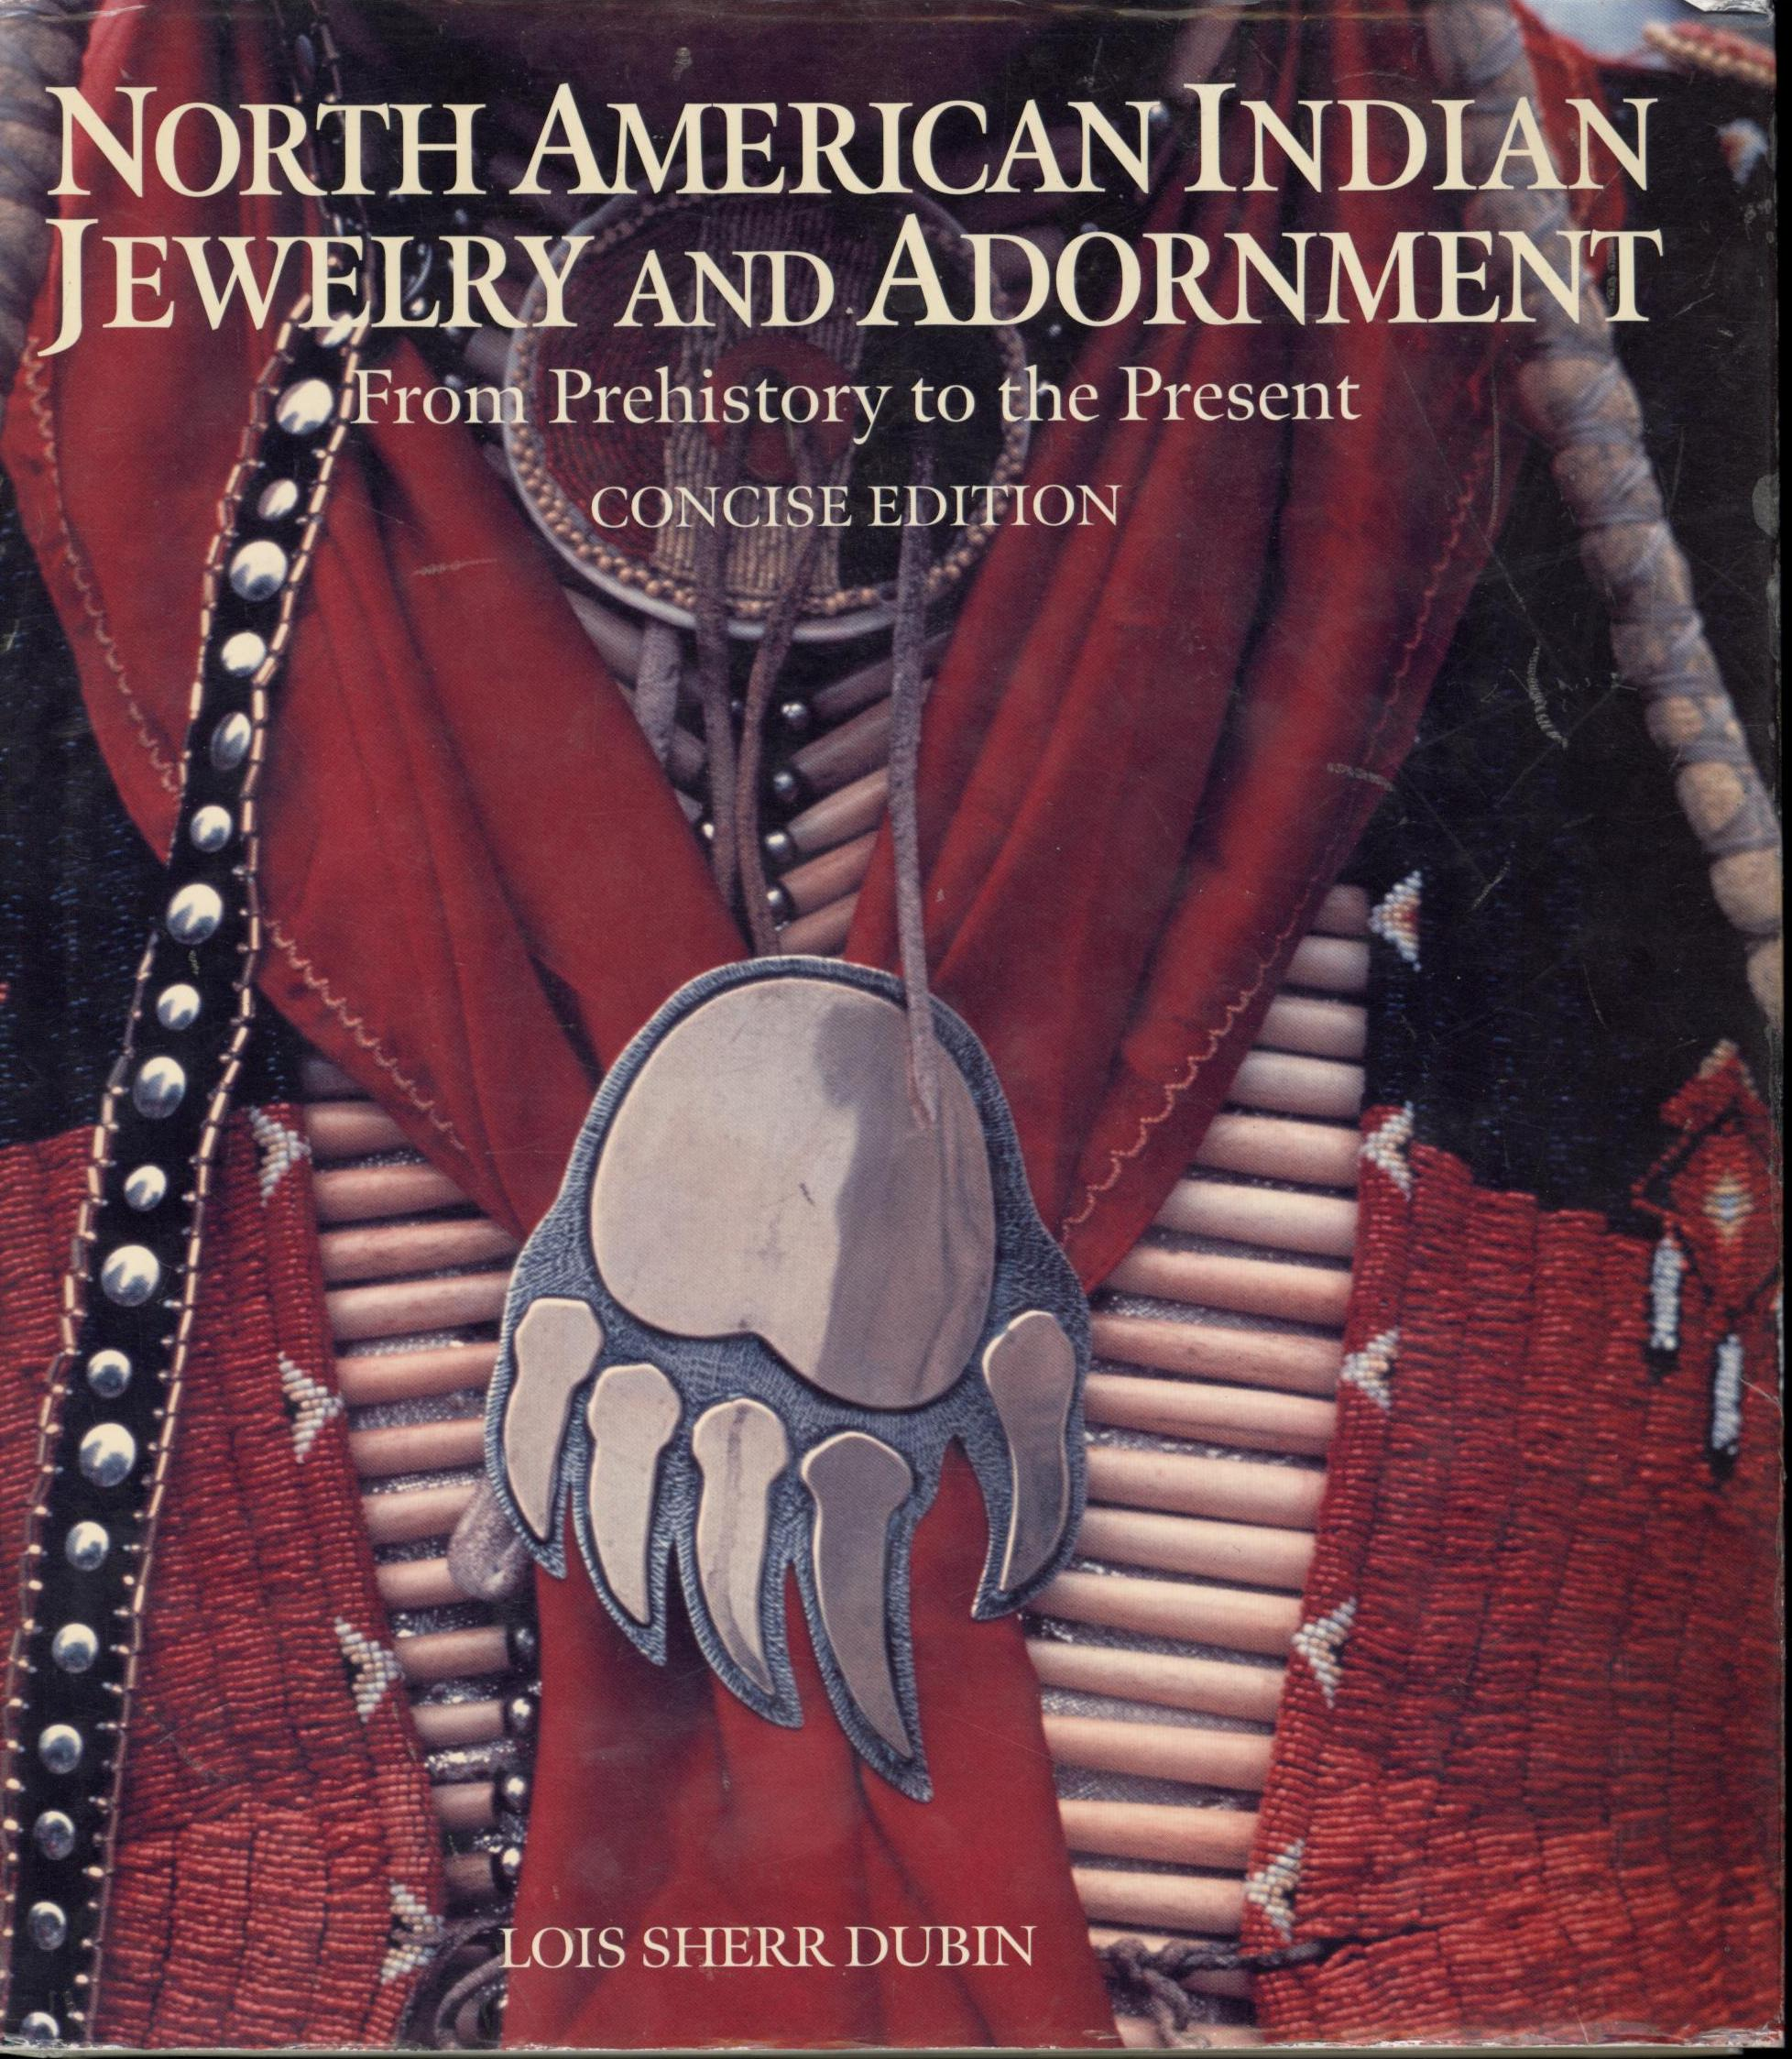 Image for North American Indian Jewelry and Adornment: From Prehistory to the Present, Concise Edition